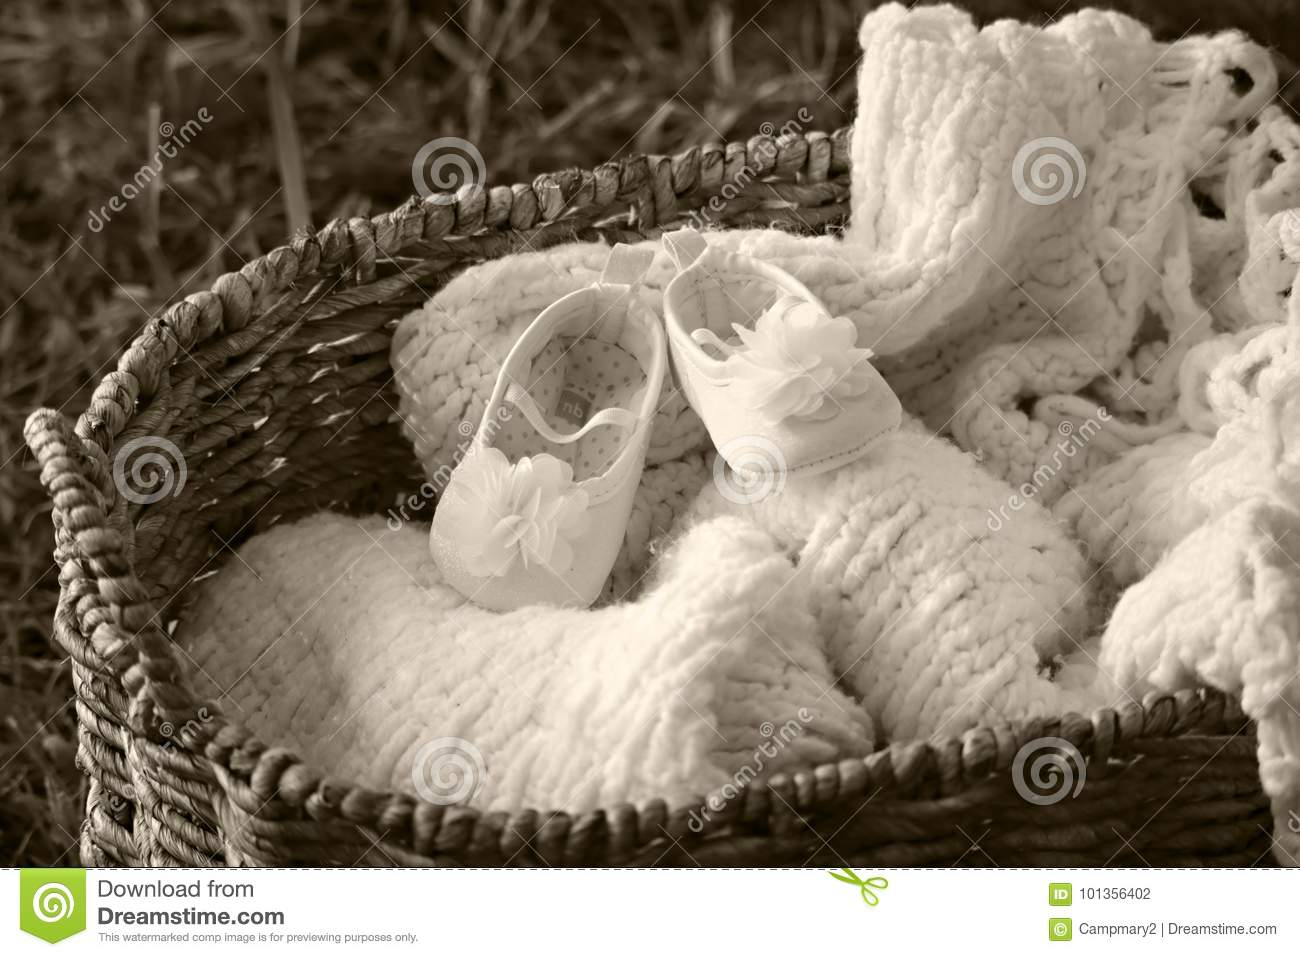 Baby Shoes And Blanket In A Basket Stock Photo Image Of Background Basket 101356402